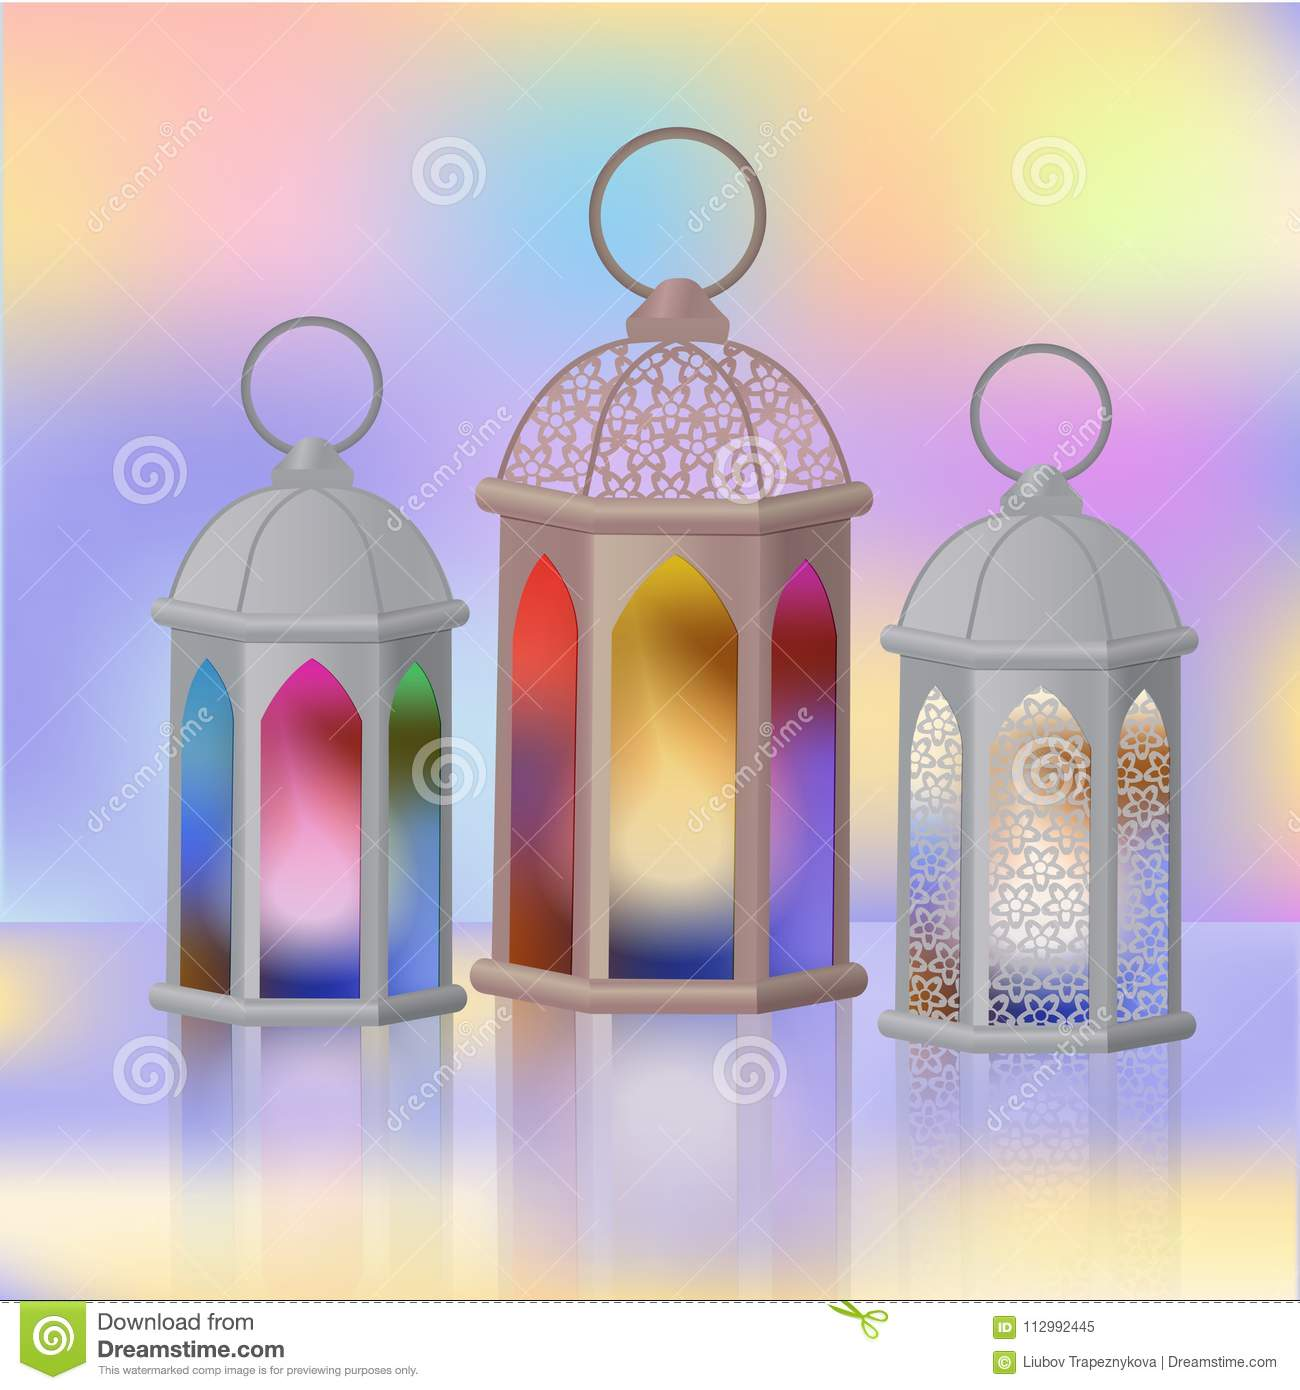 A set of Arab lanterns with multi-colored glass. Fanous is the symbol of Ramadan.